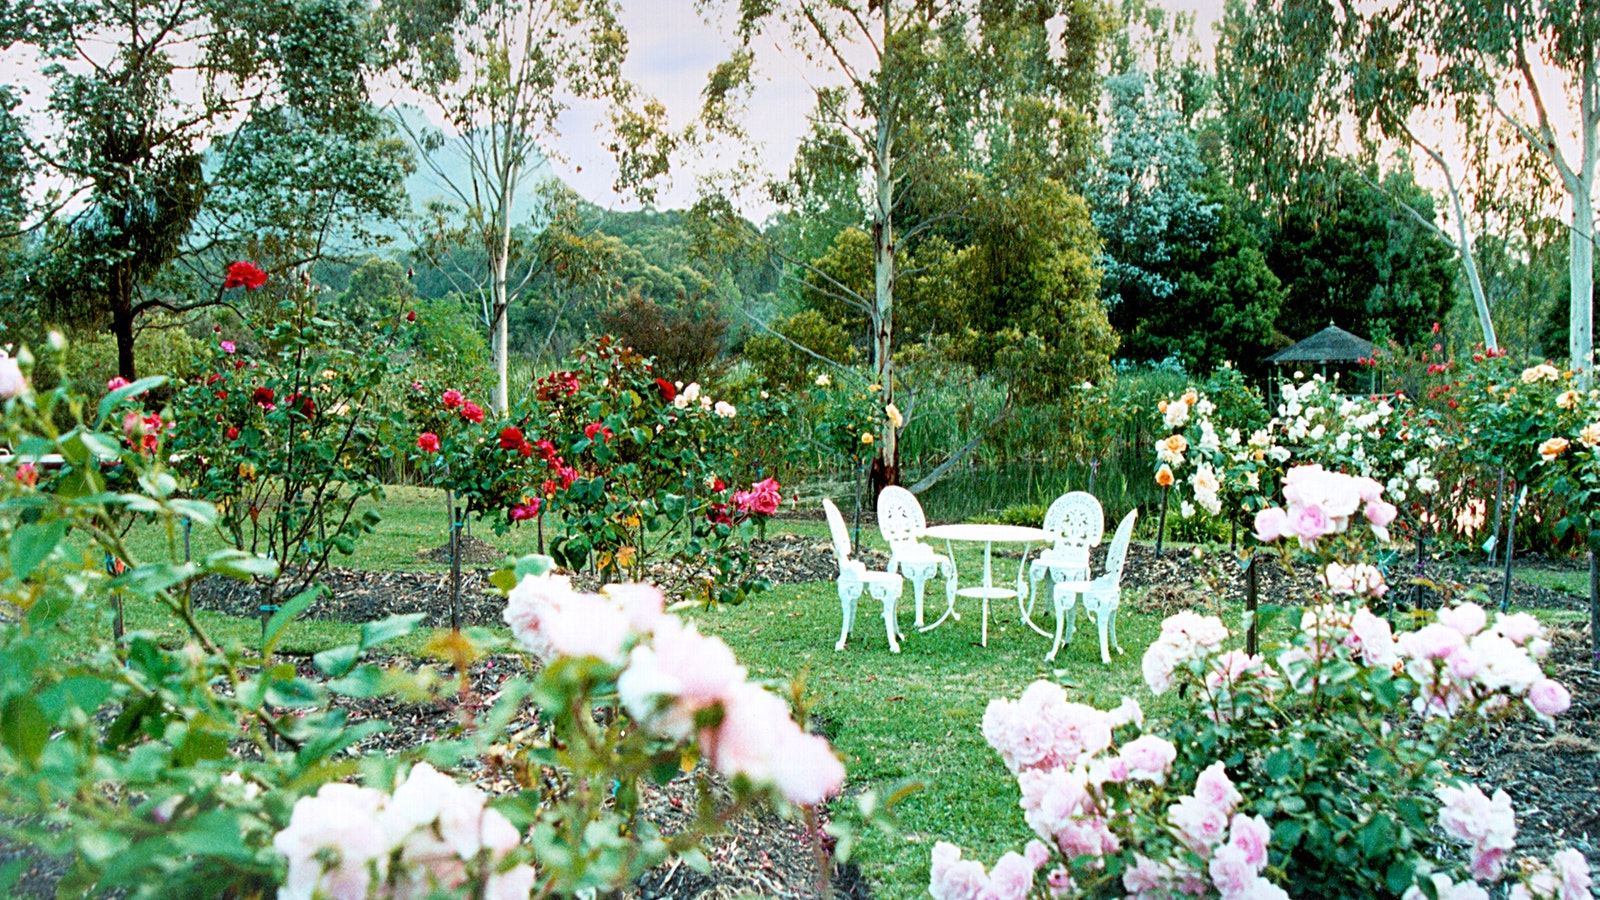 Acres of lovingly landscaped gardens